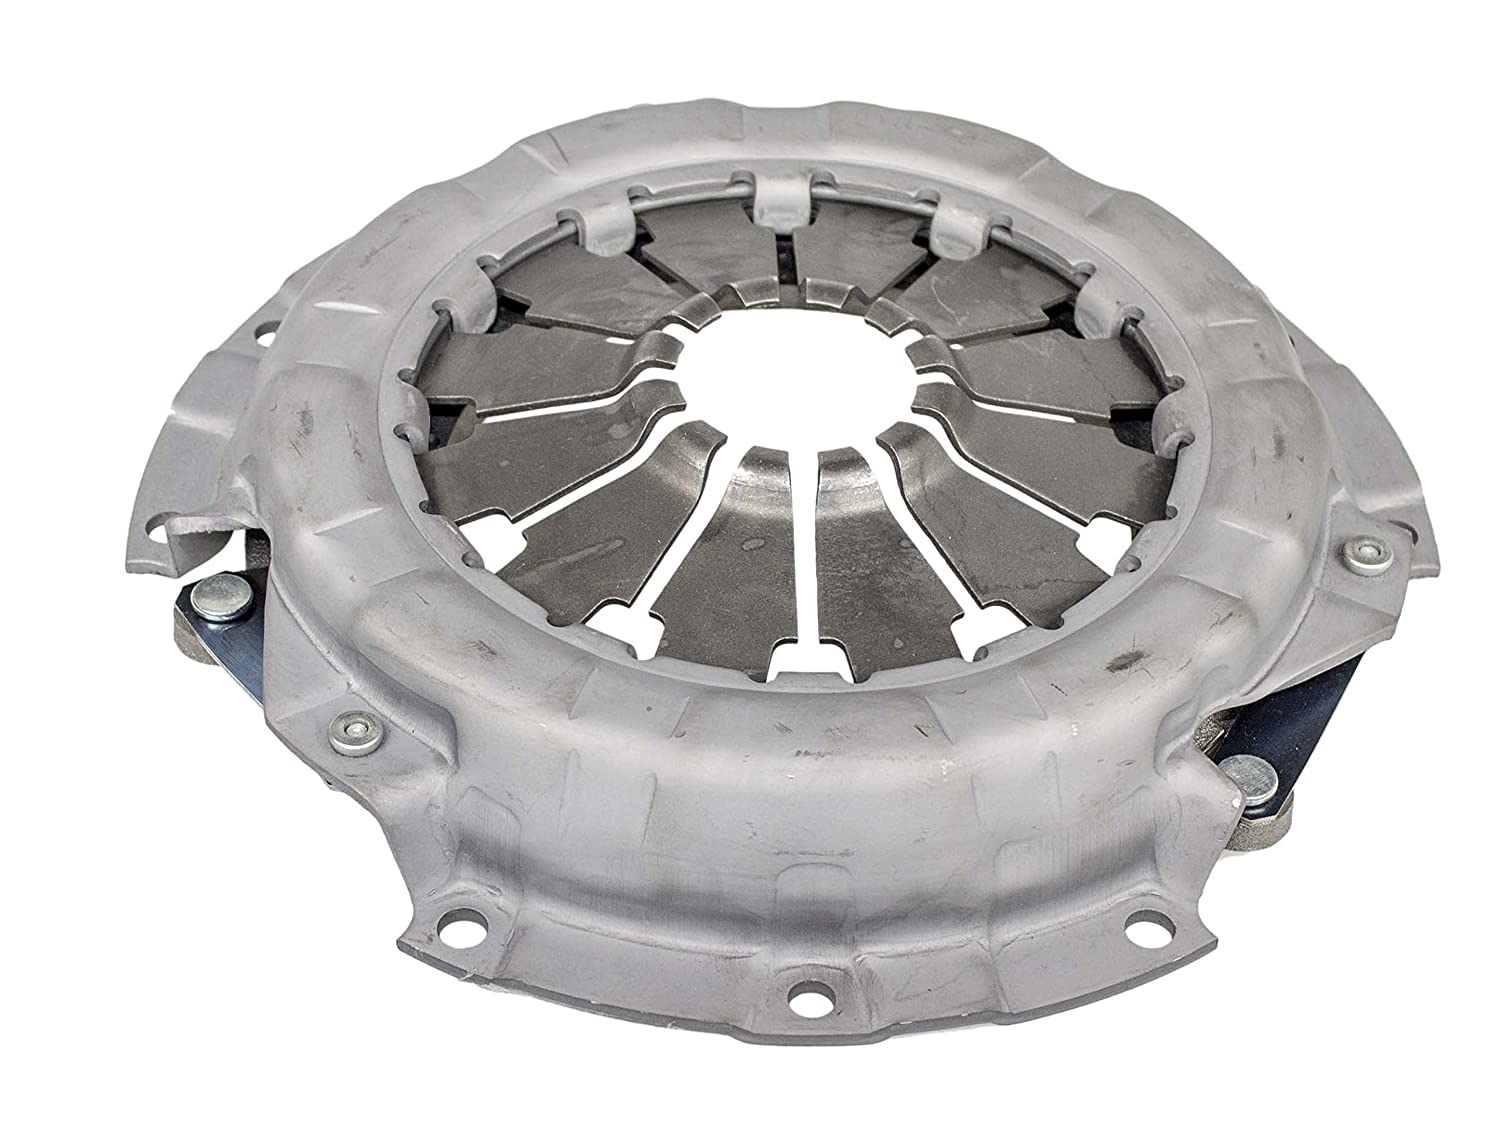 Clutch With Slave Kit Works With Suzuki SX4 Base Crossover Le Sport Gts Se JLX Jx Hatchback Sedan 2007-2010 2.0L L4 GAS DOHC Naturally Aspirated 5 Speed Transmission Only; 6-Puck Clutch Disc Stage 2